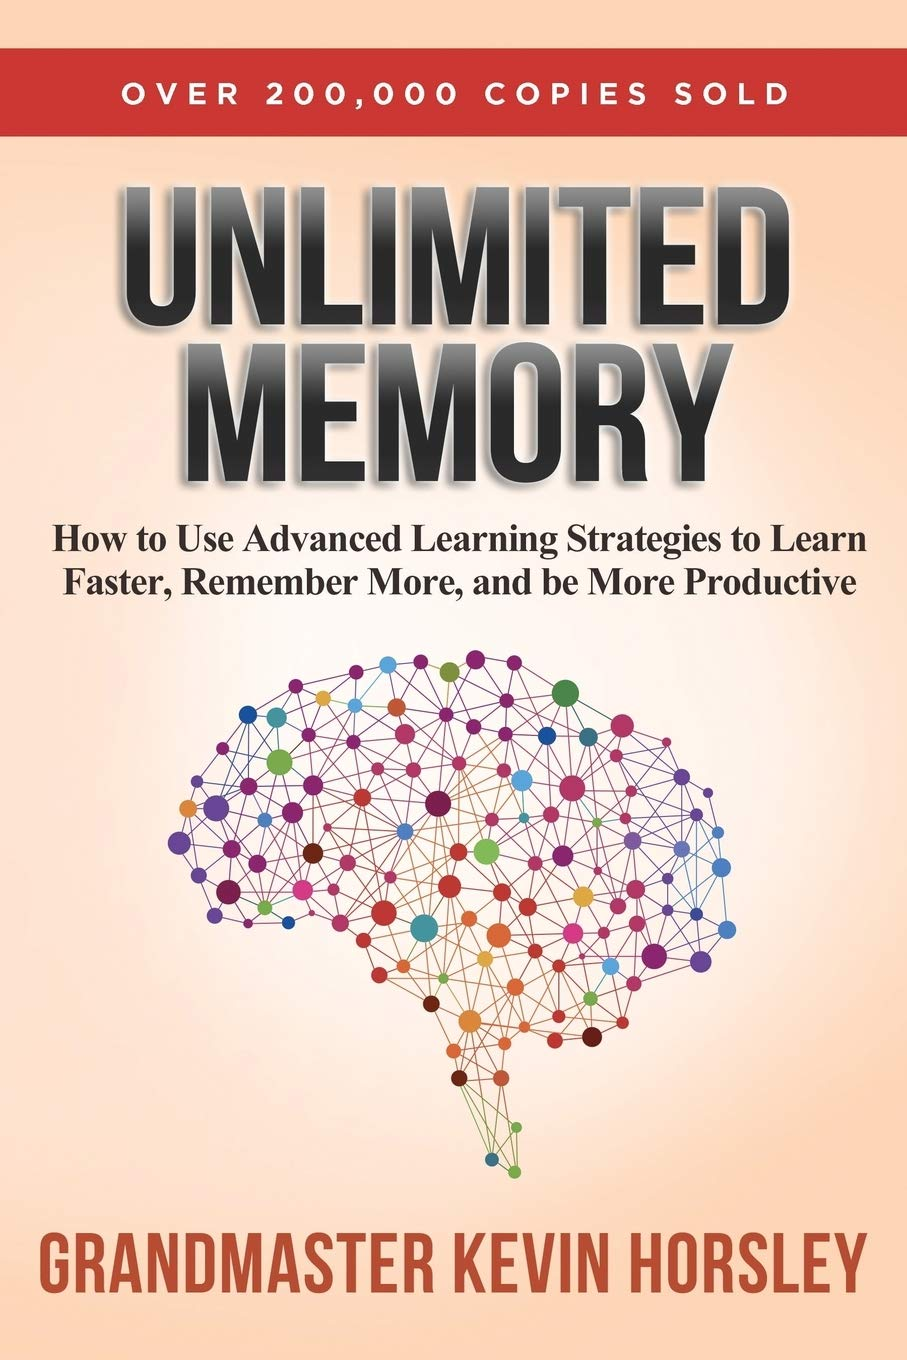 Unlimited Memory: Kevin Horsley notes by Kingston S. Lim